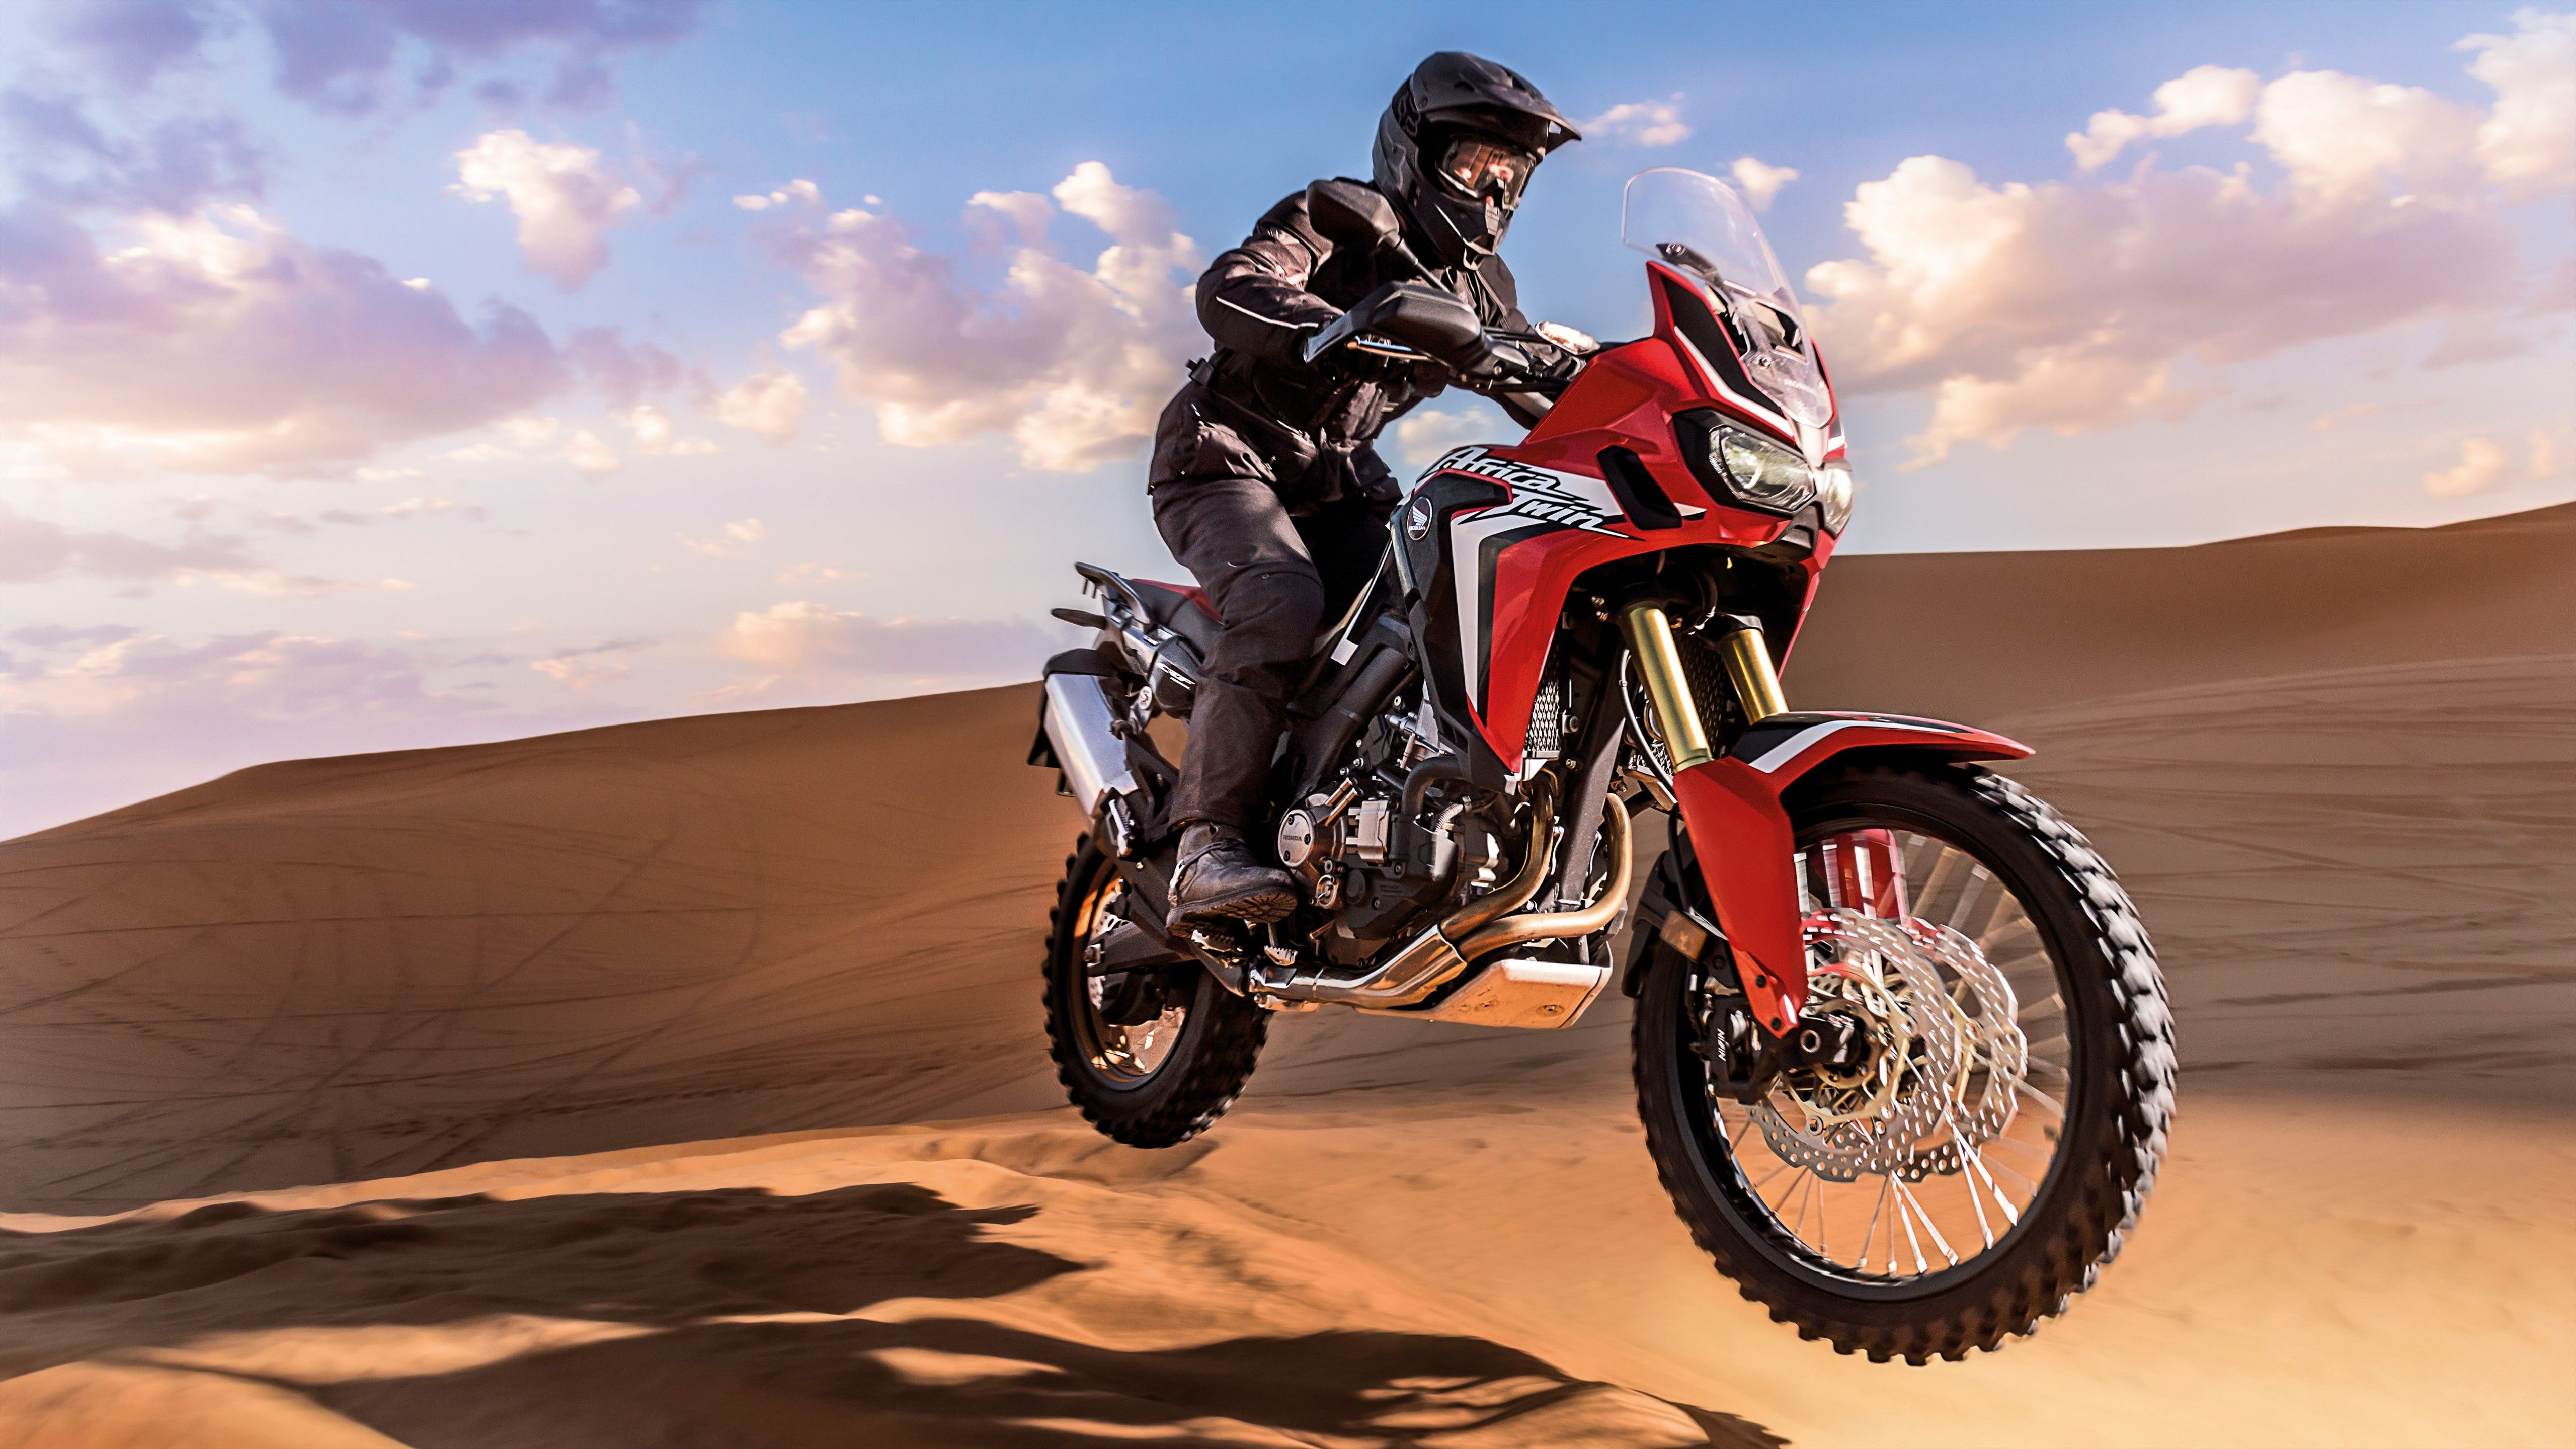 Honda Africa Twin Wallpapers Wallpaper Cave